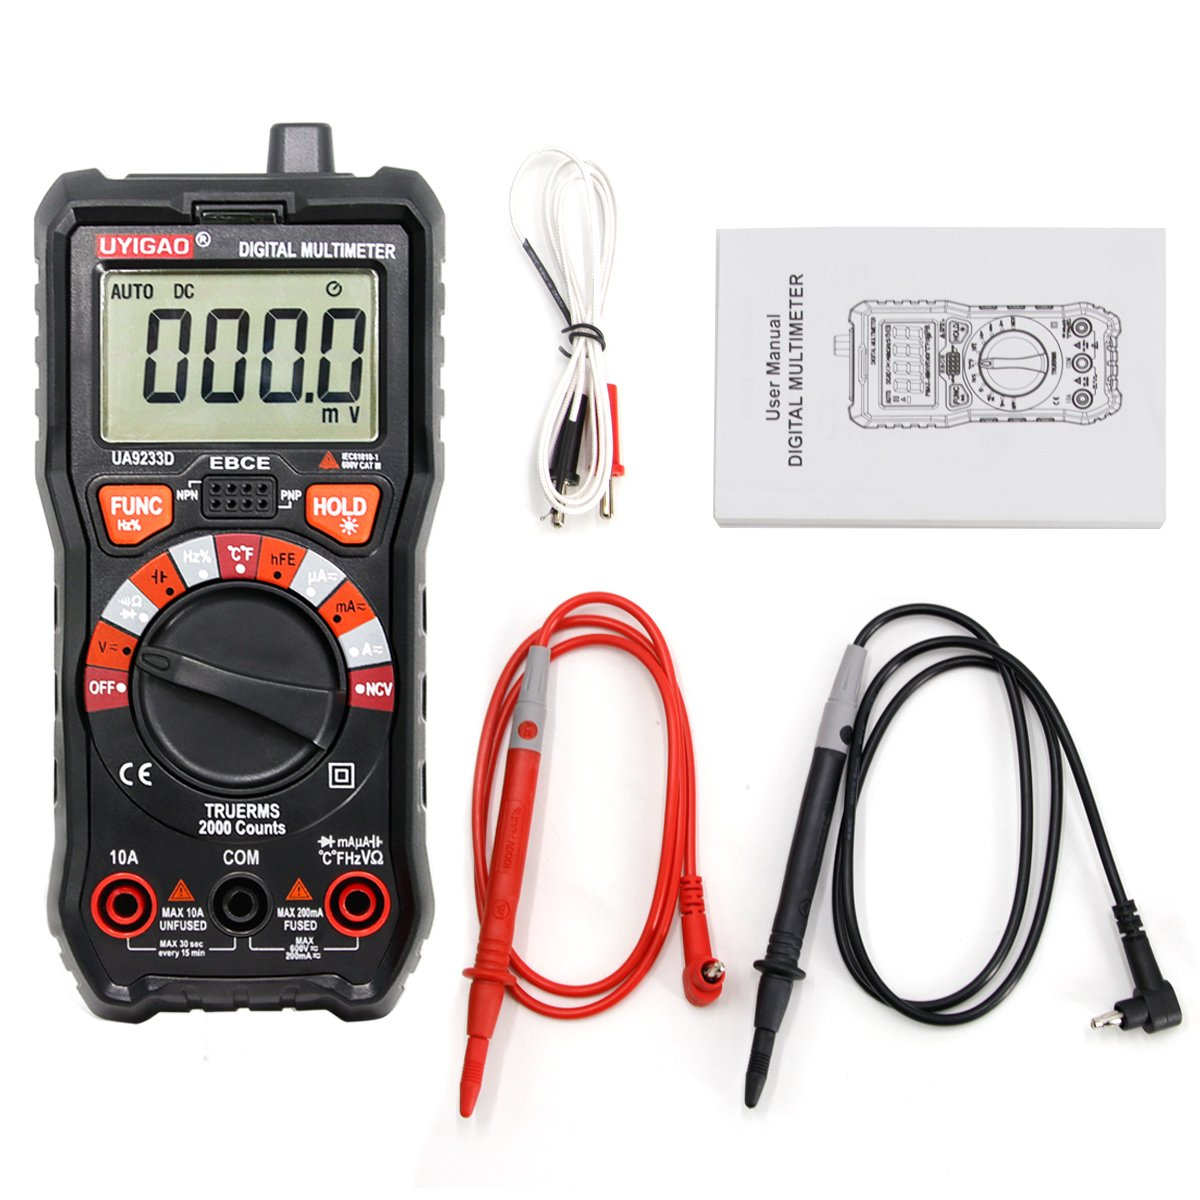 Digital Multimeter UYIGAO Auto-Ranging Digital Multimeters Electronic Measuring Instrument AC Voltage Detector Portable Amp Ohm Volt Test Meter Multi Tester Diode and Continuity Test Scanners Home Use by UYIGAO (Image #6)